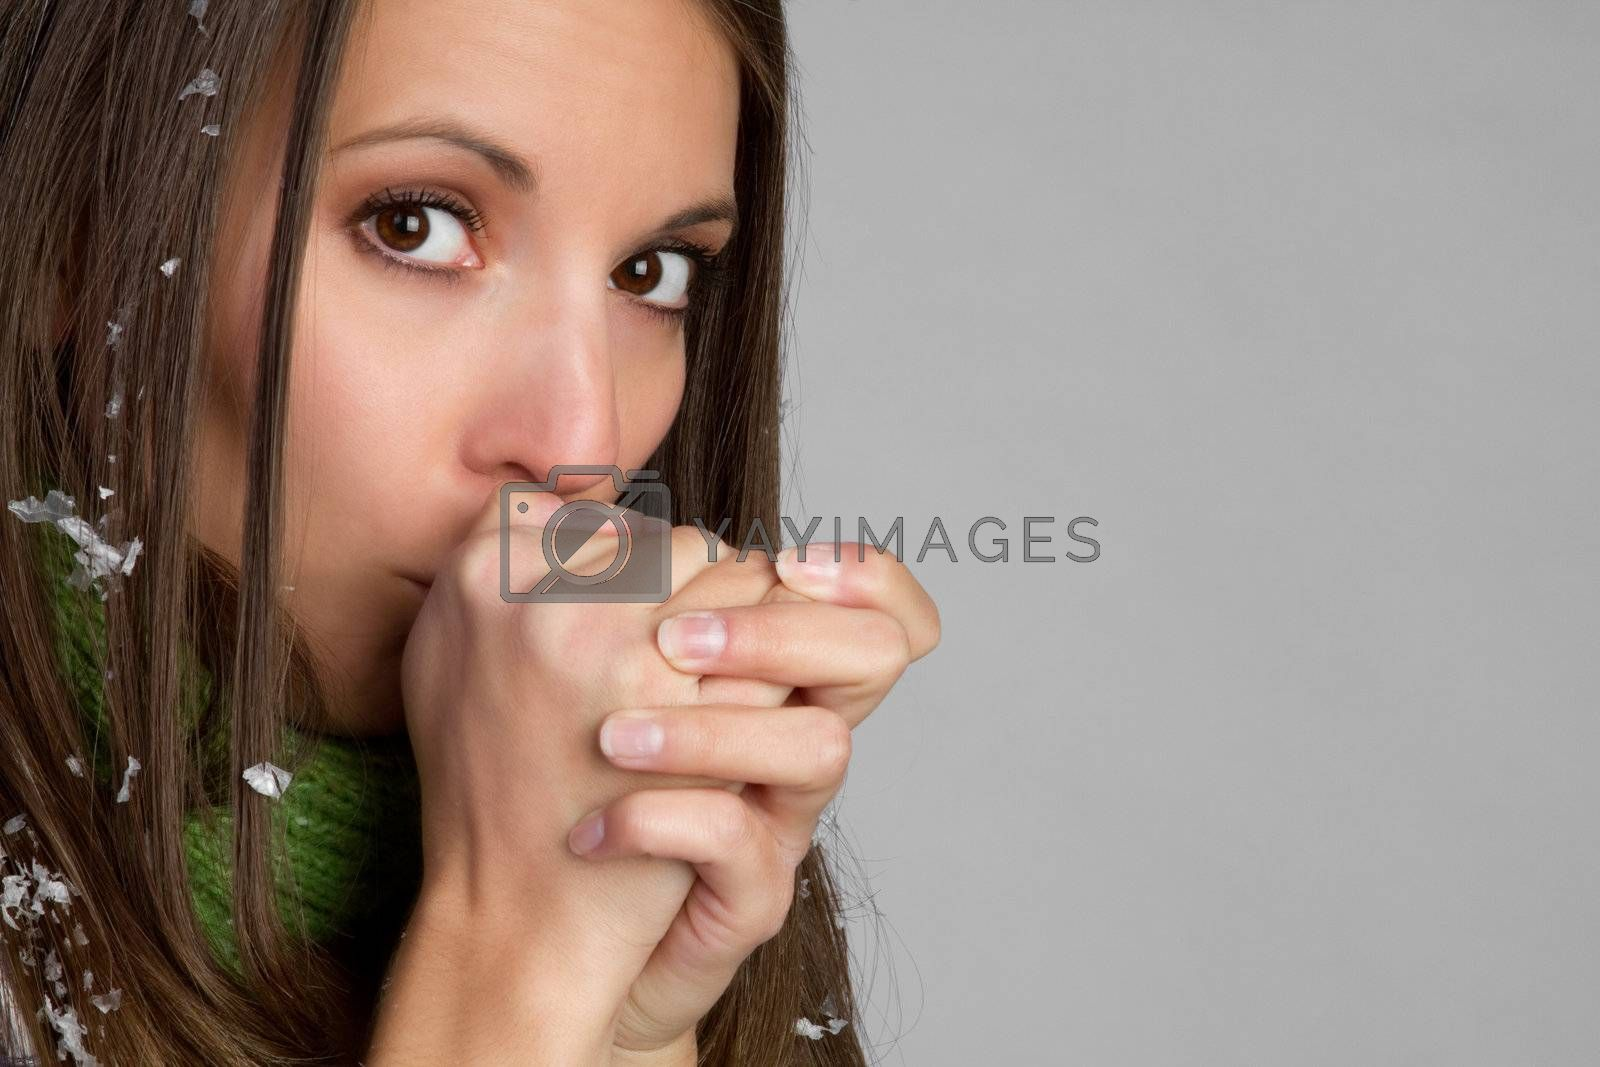 Cold woman blowing on hands